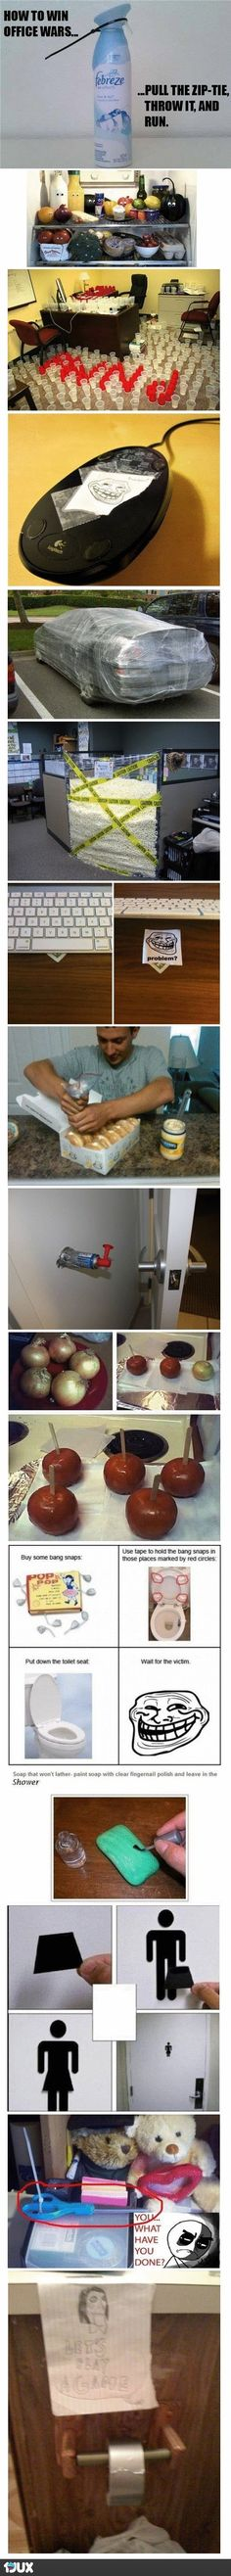 Doesn't have to be office pranks it could be for April fools